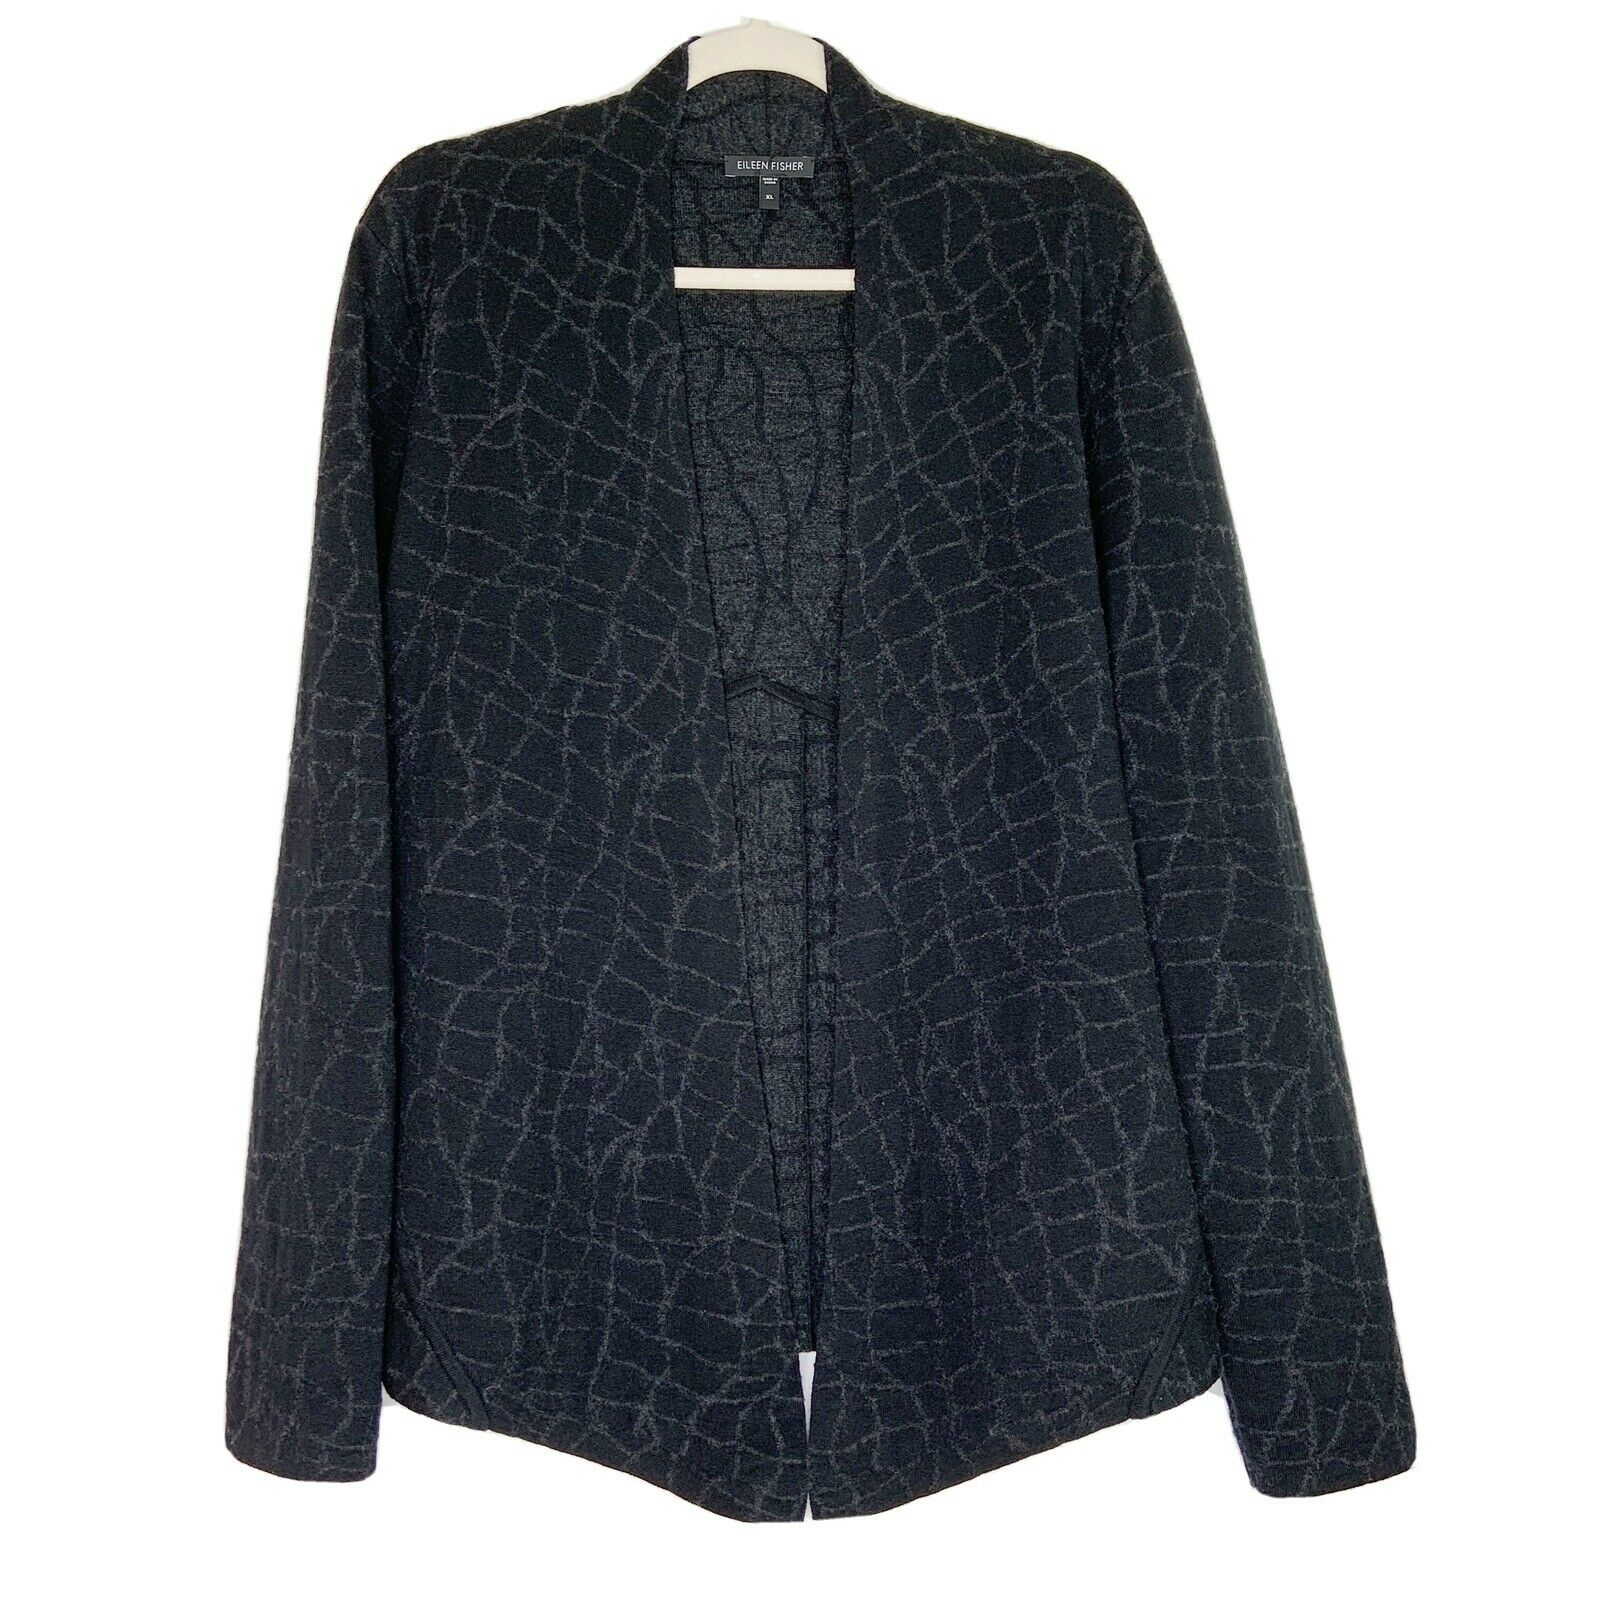 Eileen Fisher Womens Mosaic Open Front Shaped Jacket Size XL Wool Knit Charcoal